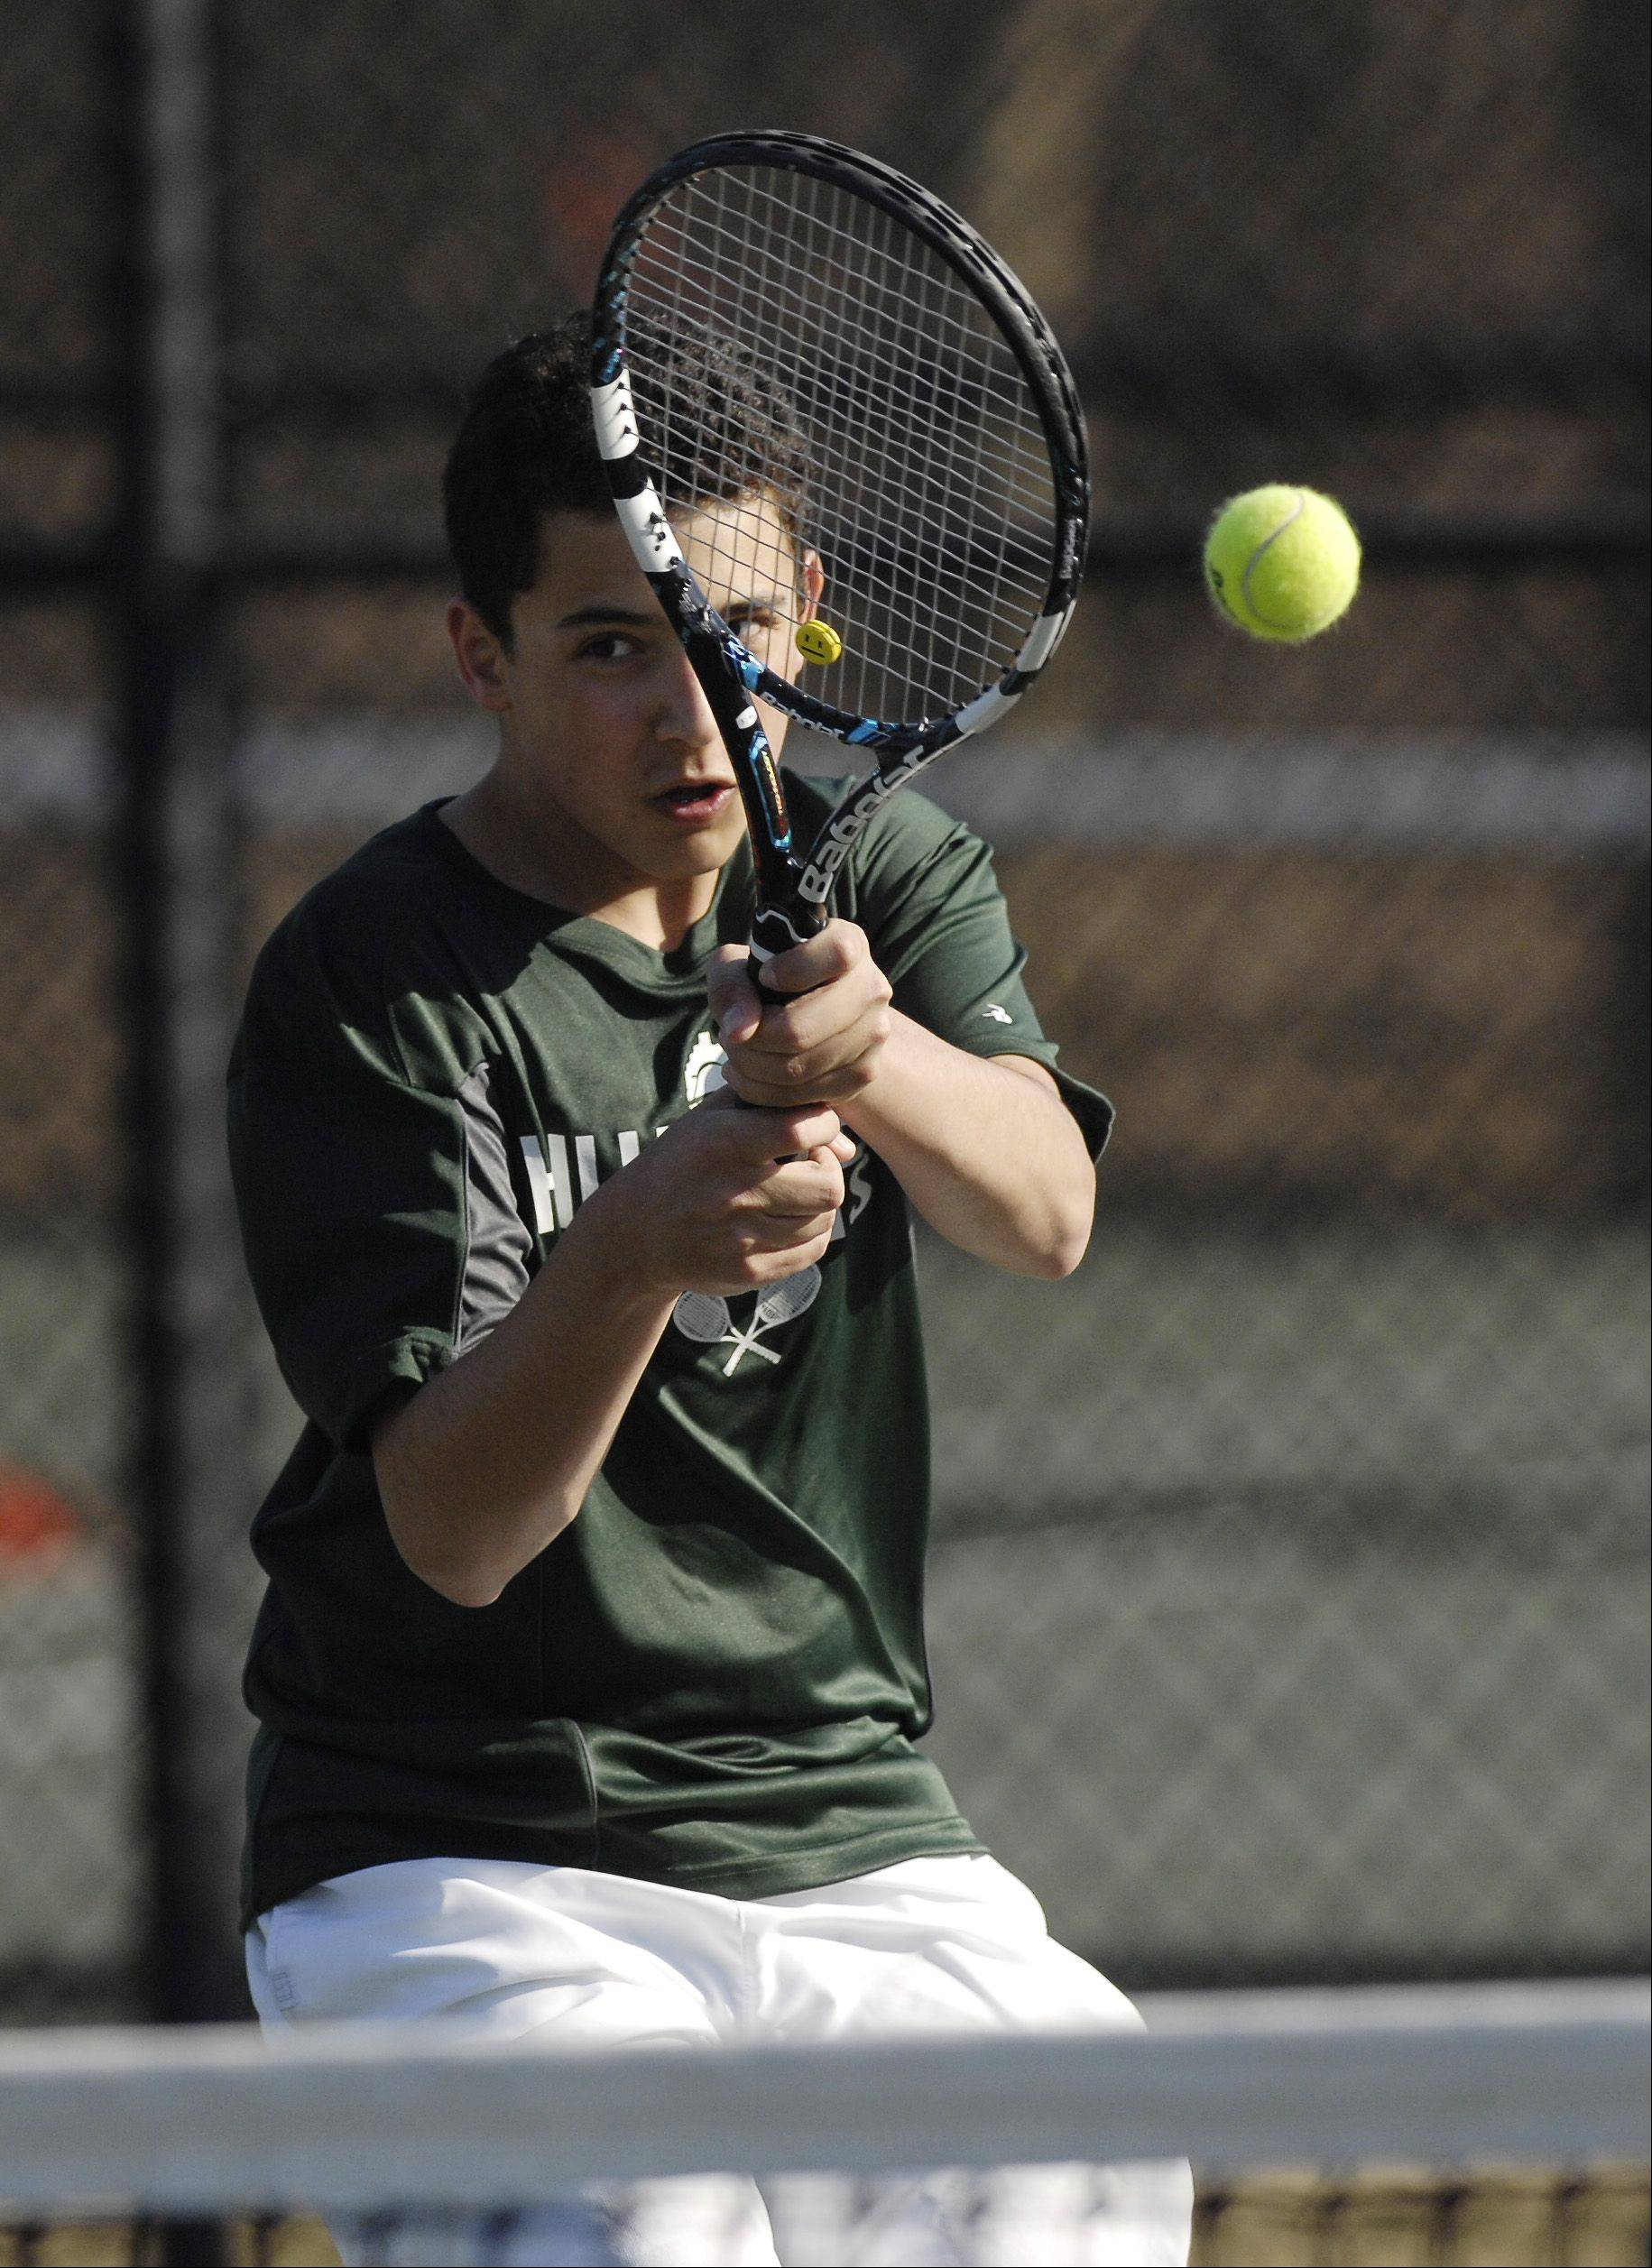 Steven Hanna of Glenbard West plays against Benny Li of Naperville North during a boys varsity tennis match at West, Thursday.